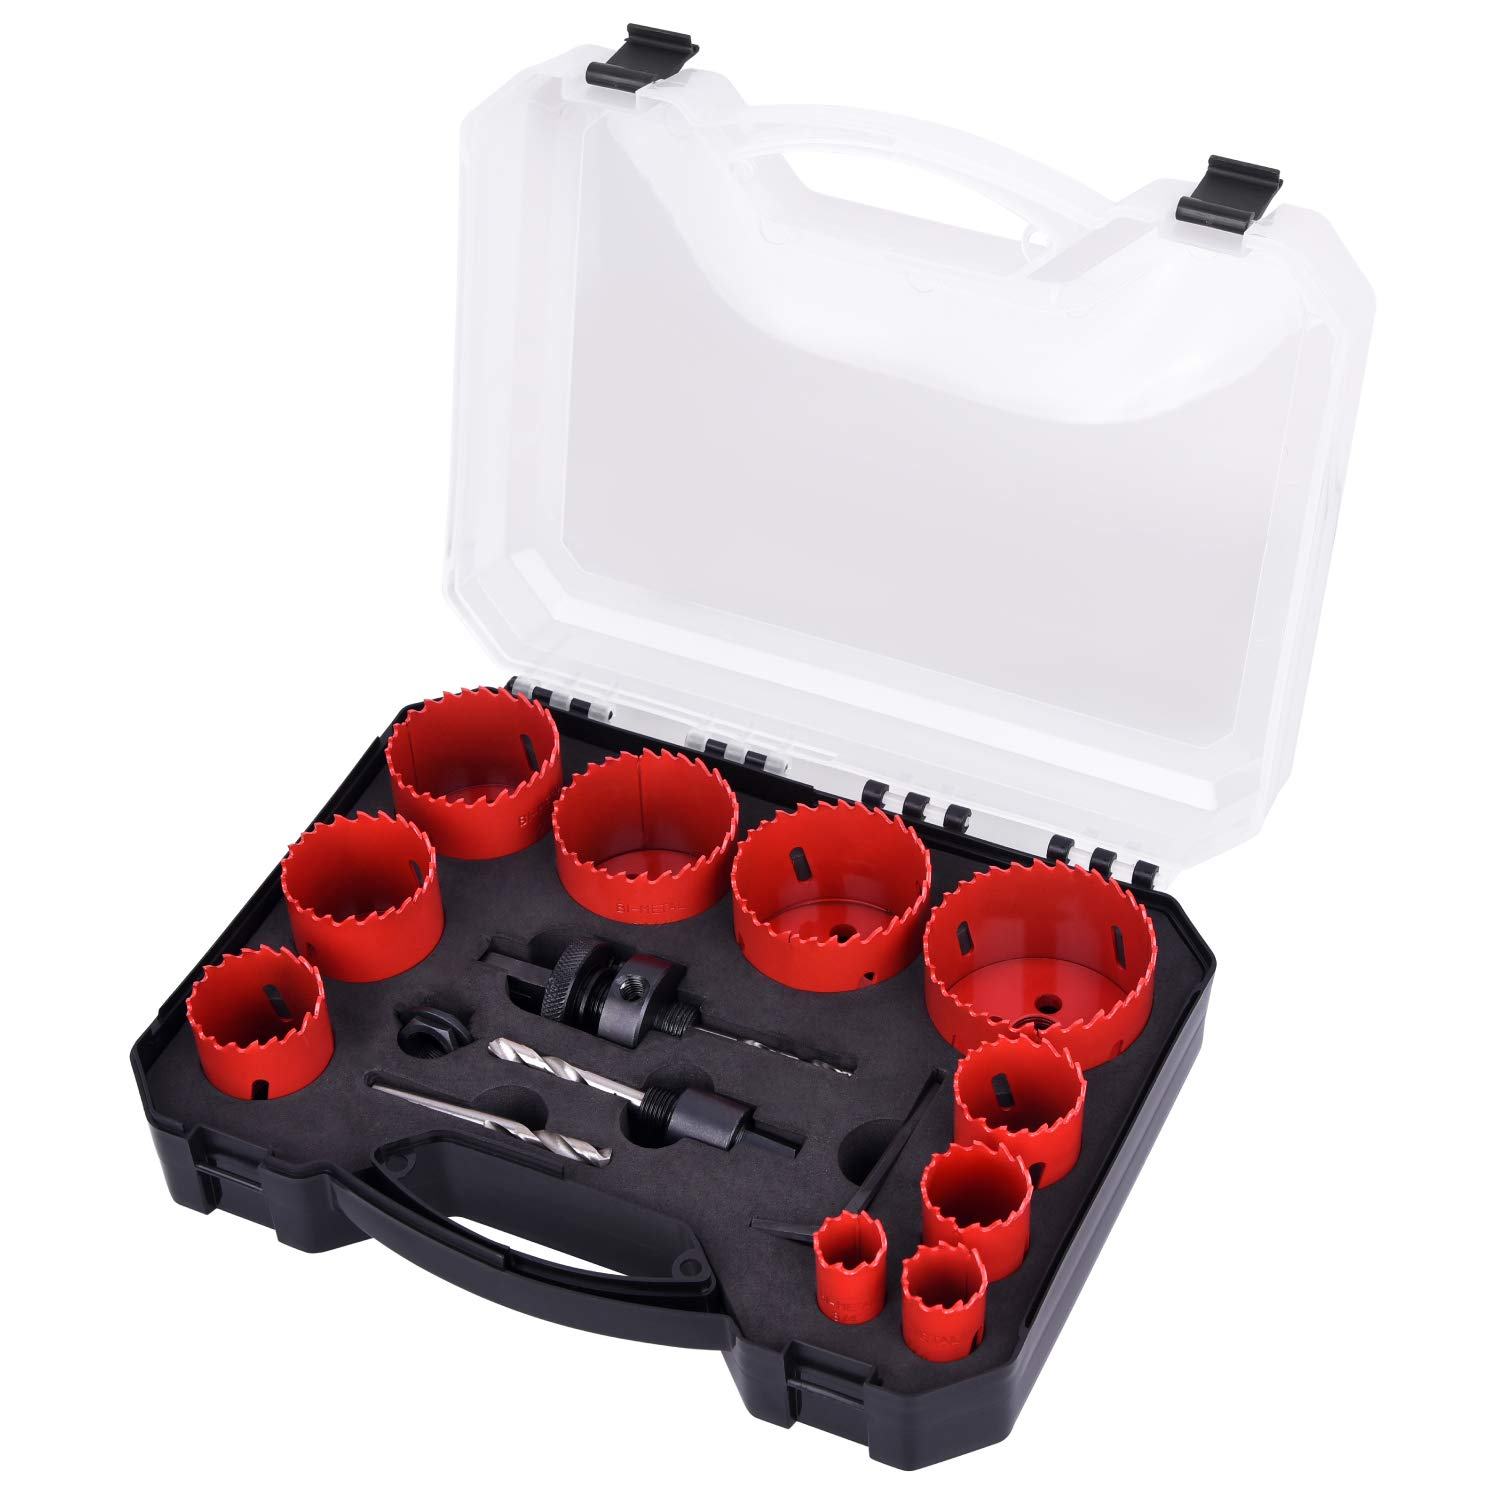 """Bi-Metal Hole Saw Kit, SUNGATOR 14-Piece General Purpose 3/4"""" to 2-1/2"""" Set with Case. Durable High Speed Steel (HSS). Fast Cut Clean, Smooth and Precise Holes Through Metal, Wood, Plastic, Drywall."""